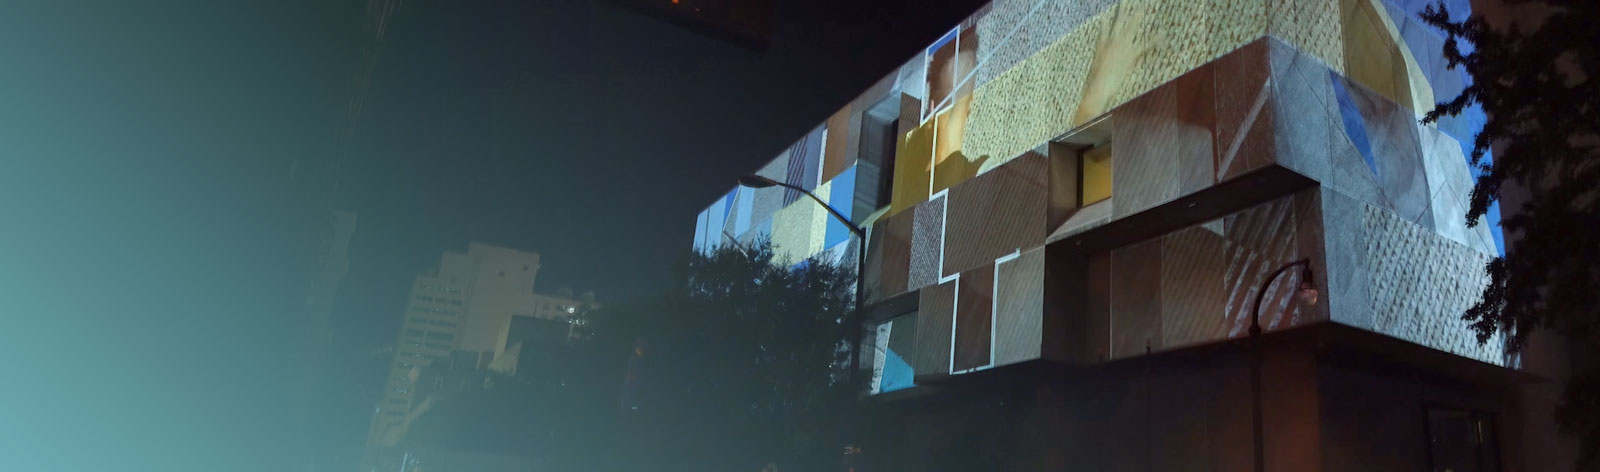 building-square-projection-mapping-blue